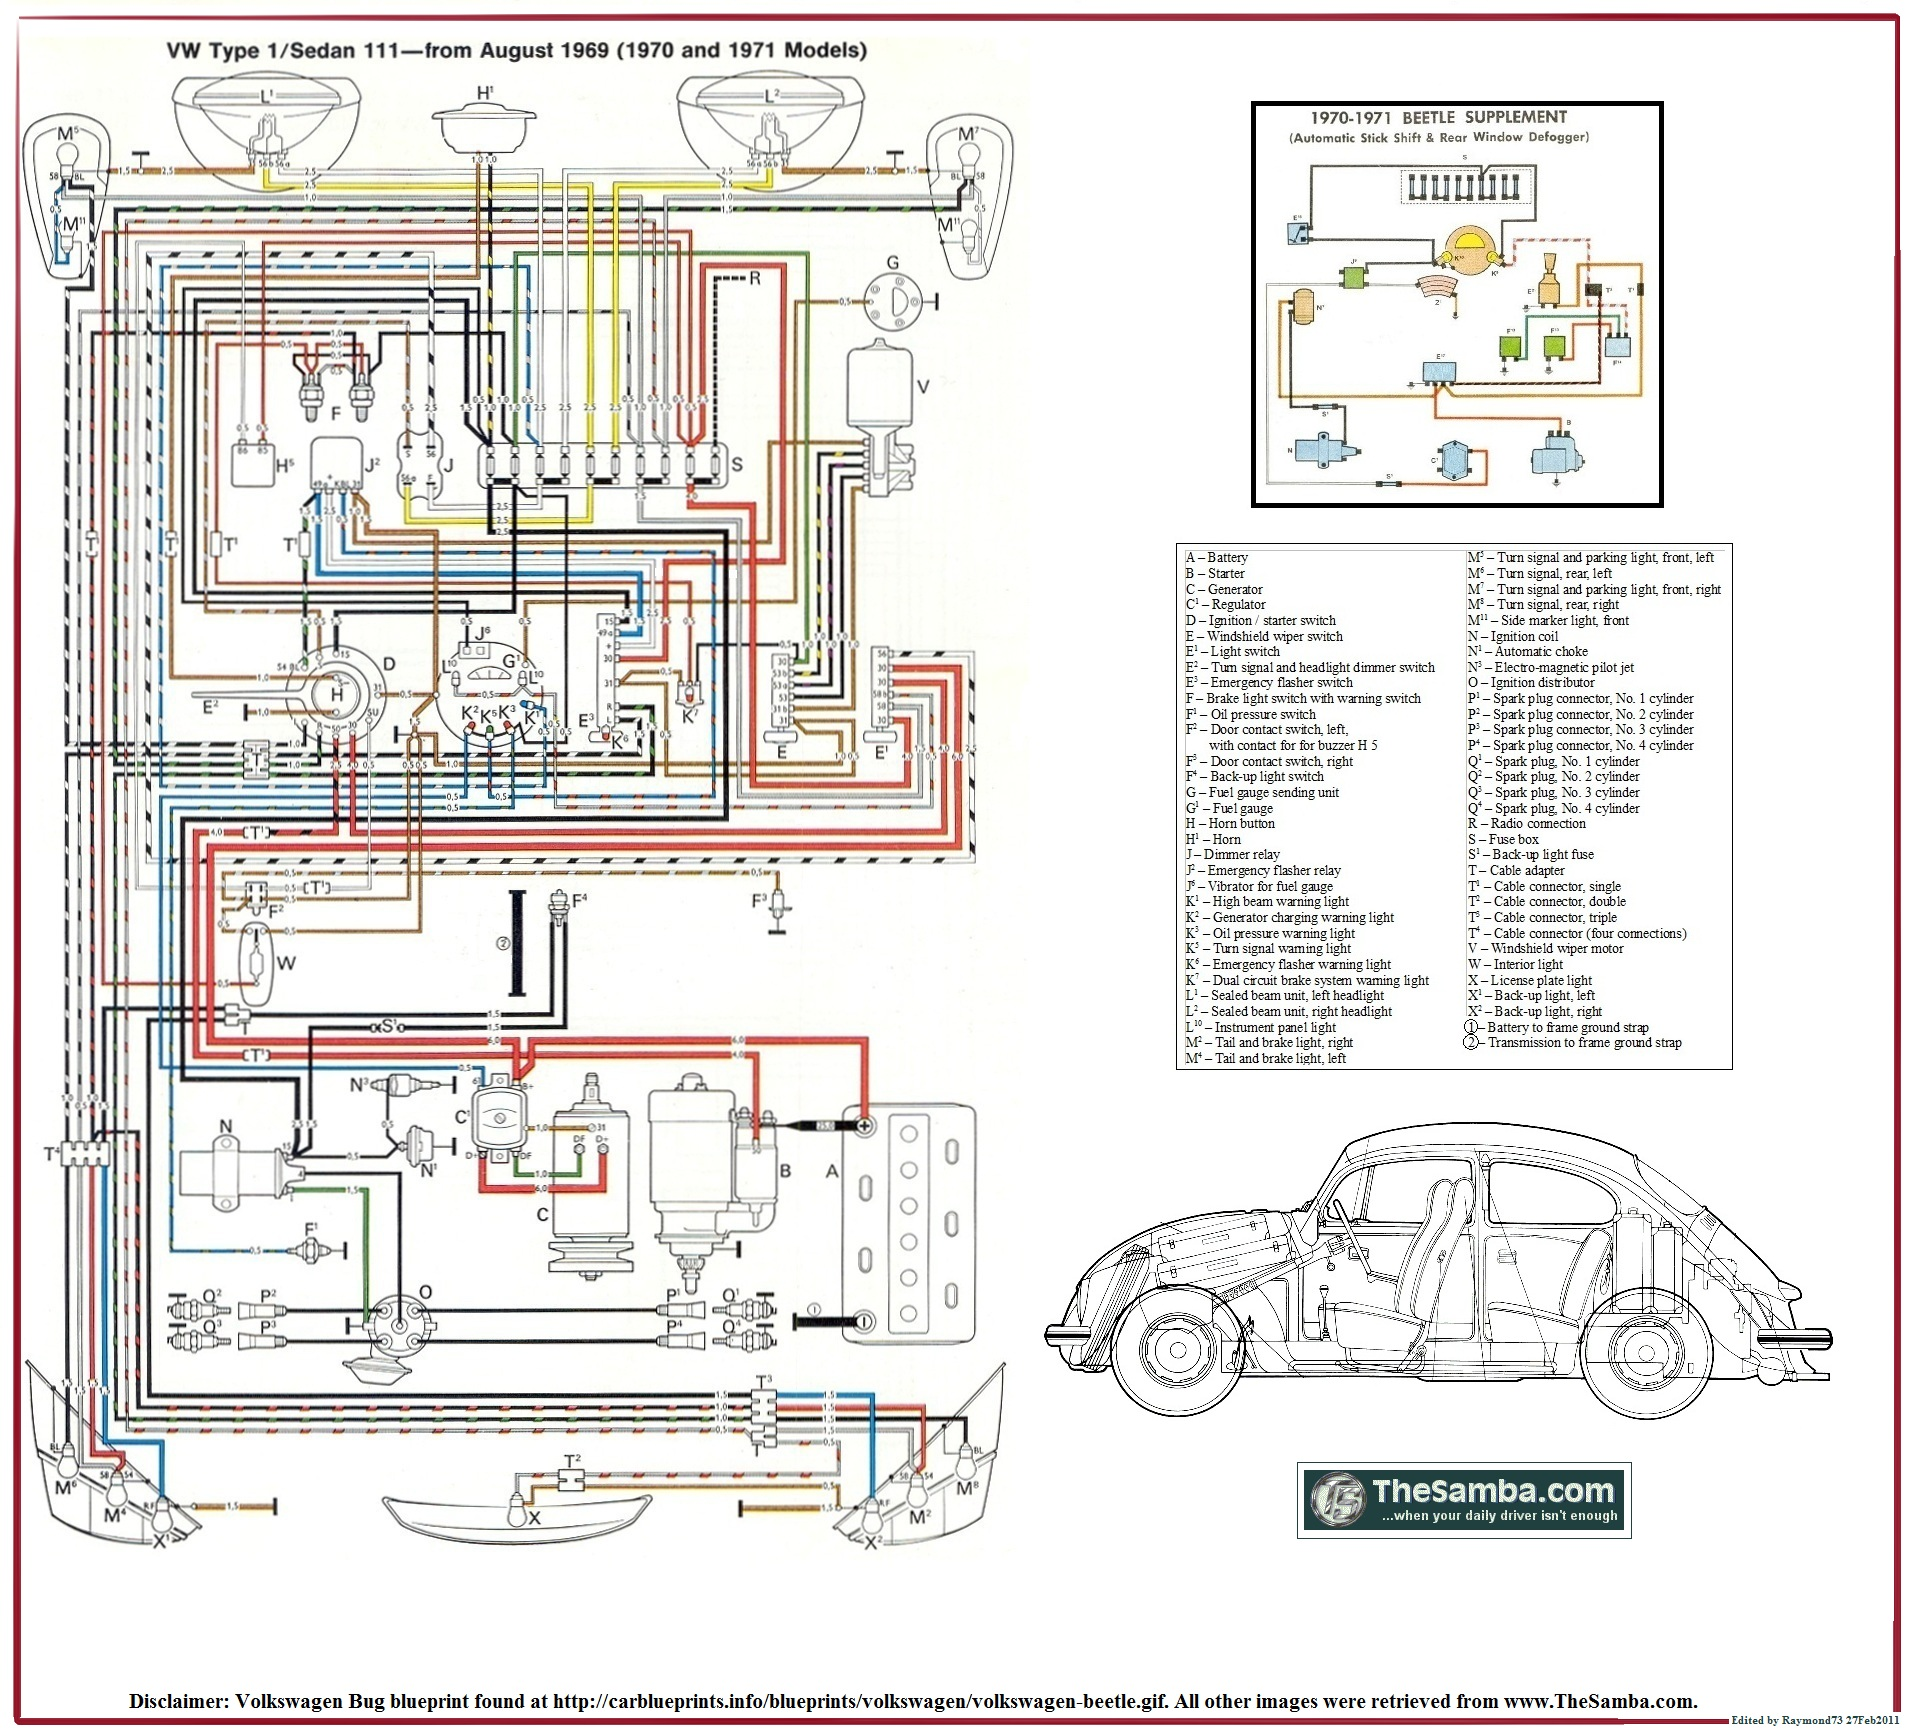 1970_VW_Type_1_Poster thesamba com beetle late model super 1968 up view topic vw beetle wiring diagram at creativeand.co